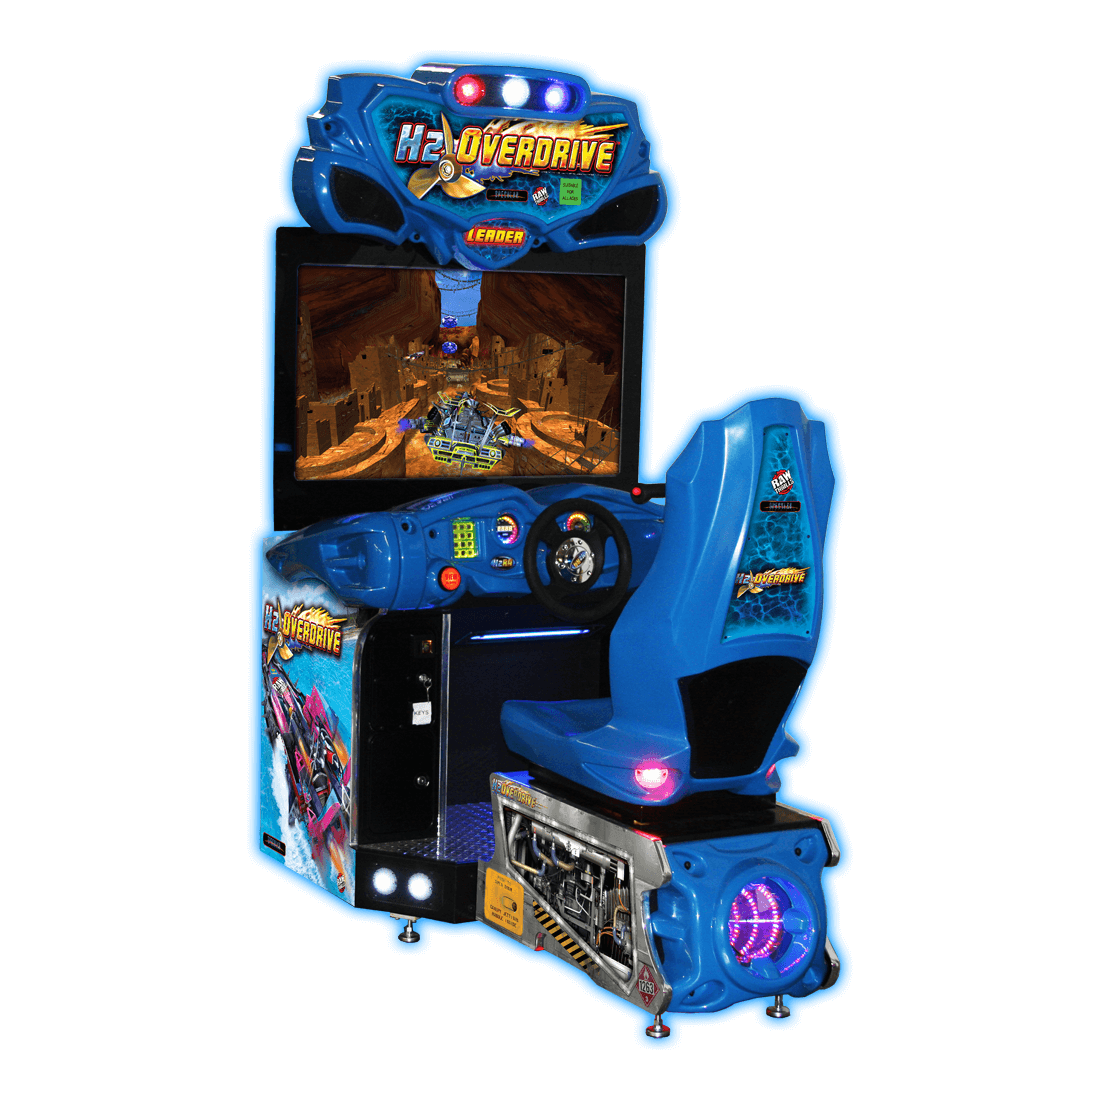 Arcade games png. Buy h o overdrive